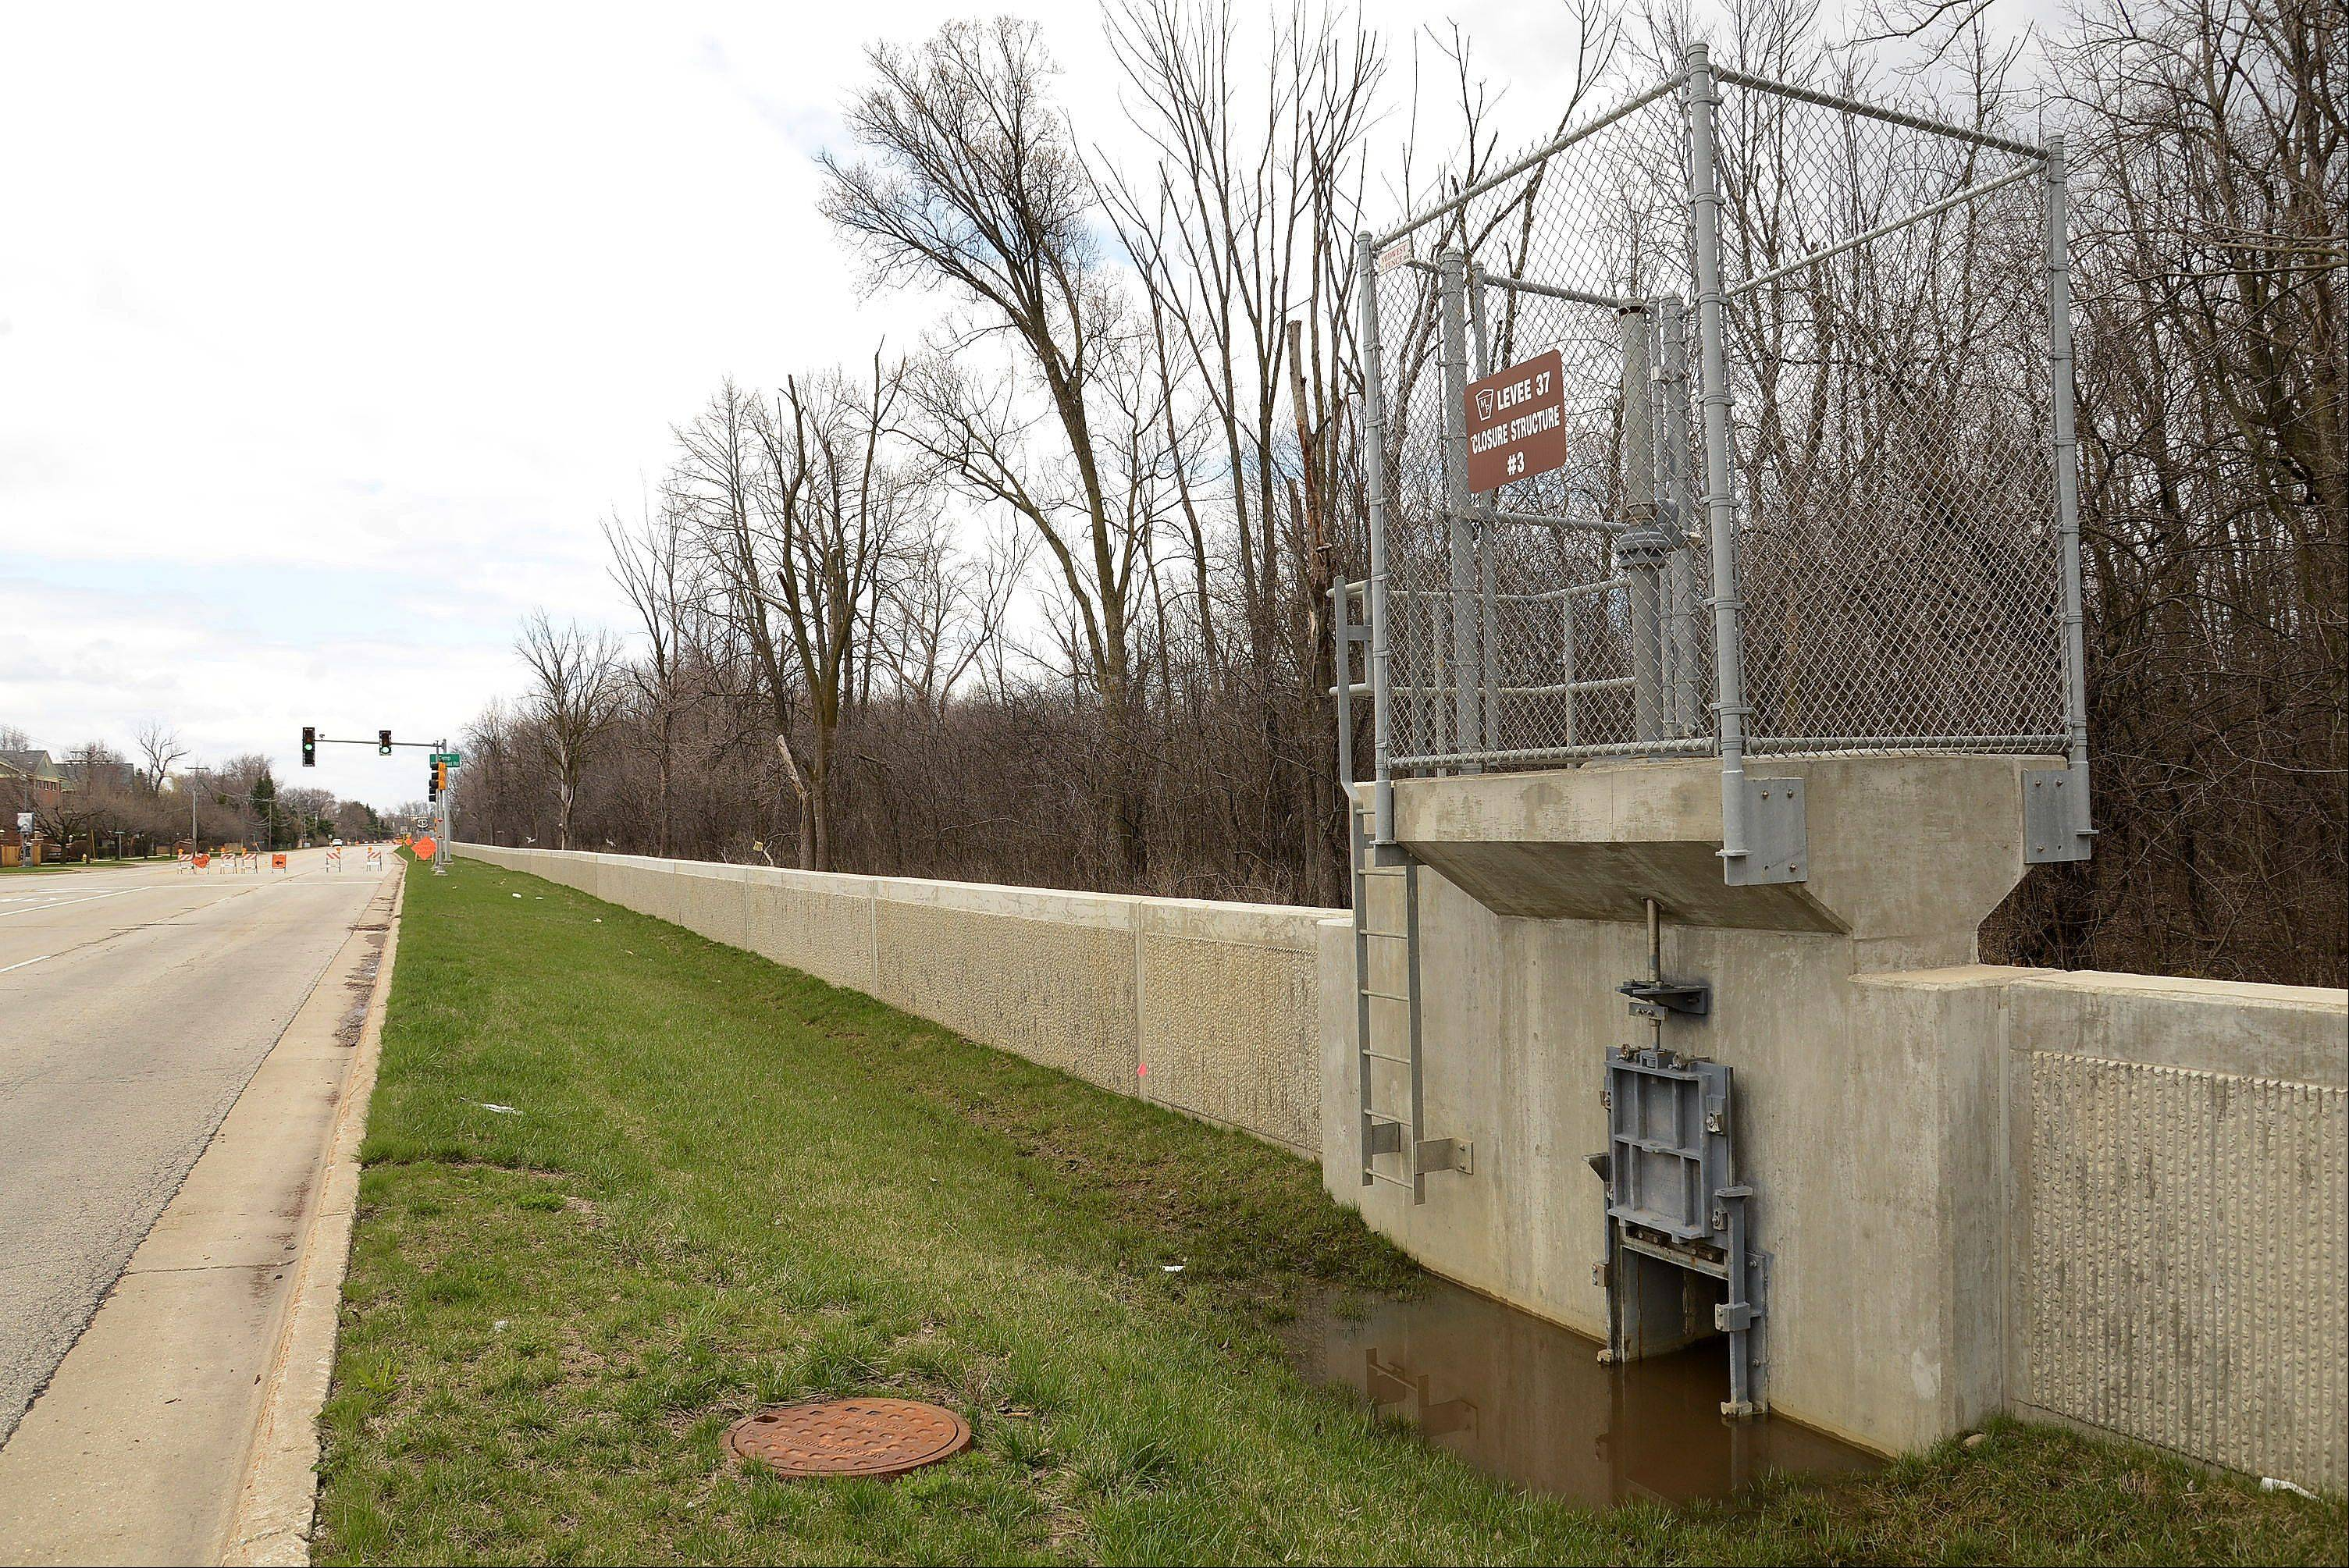 Northwest suburban communities along the Des Plaines River met Monday to discuss operations of Levee 37 along River Road in Mount Prospect as well as the need to accelerate the pace of construction of stormwater basins in Wheeling's Heritage Park.